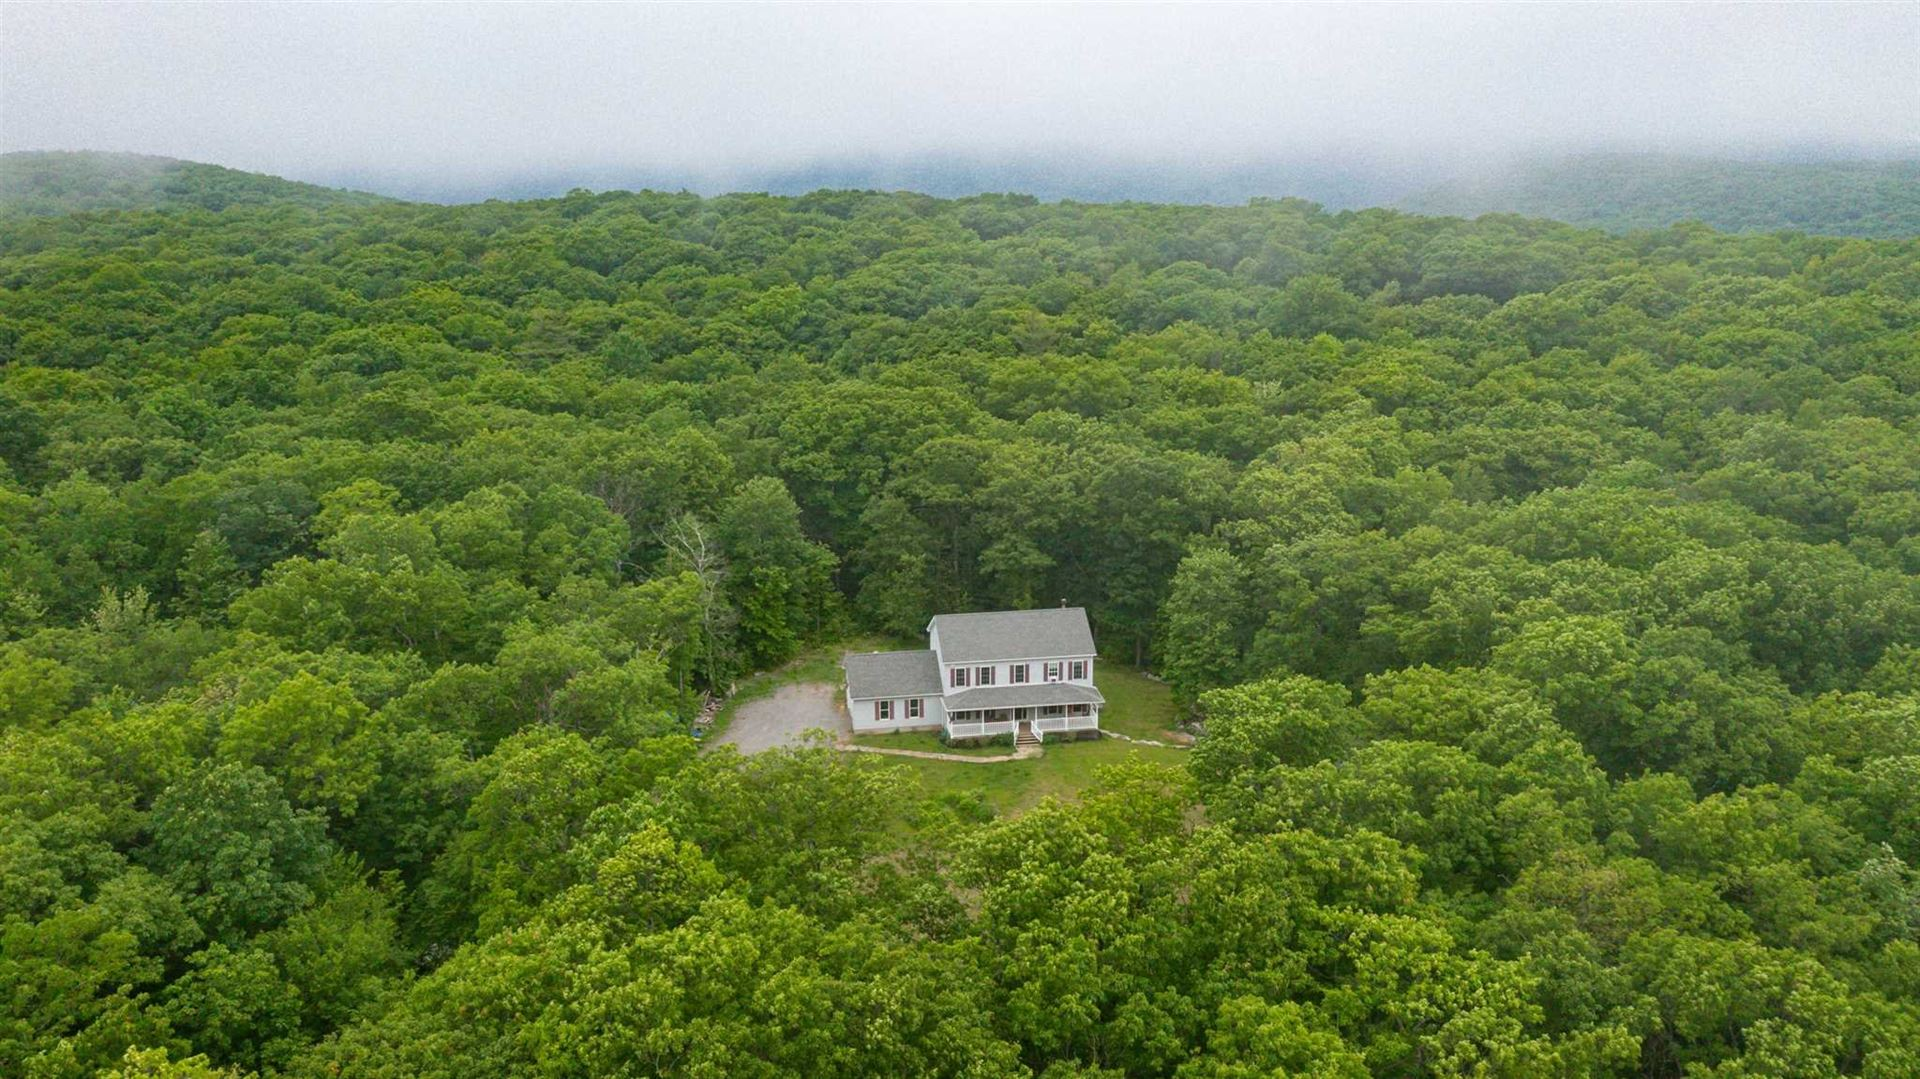 12 OLD OAKS RD, Cold Spring, NY 10516 - #: 402020